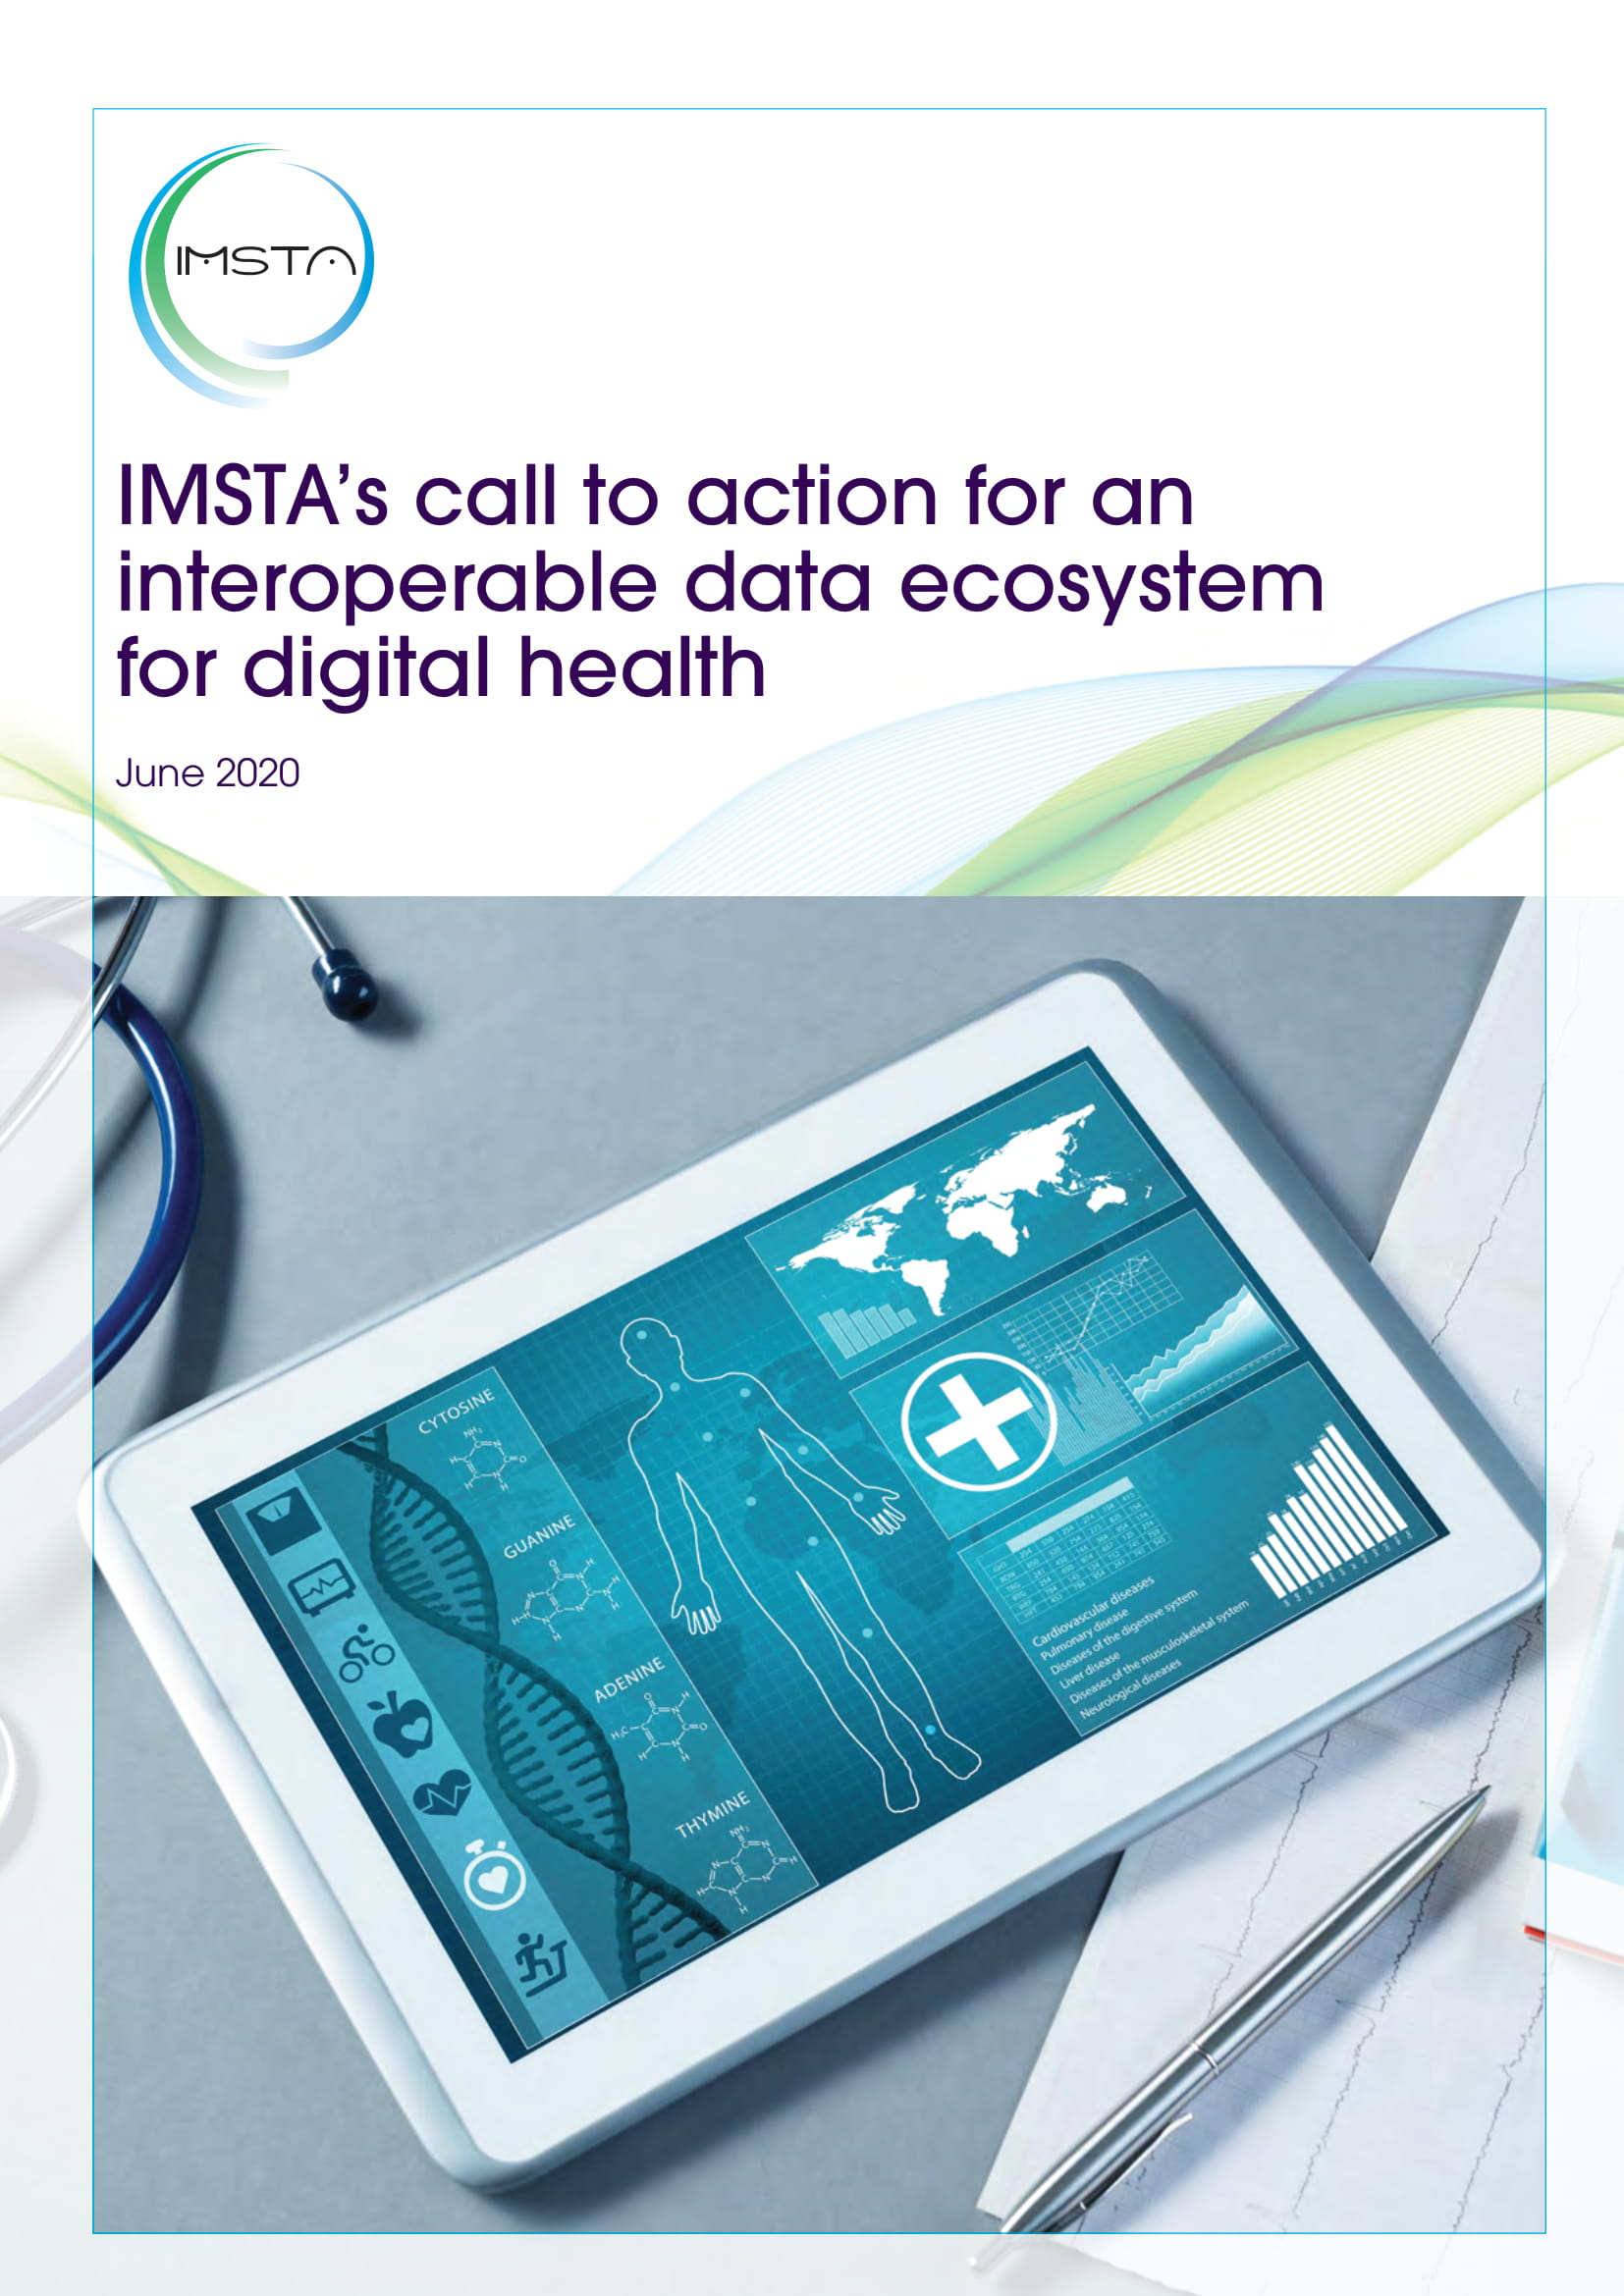 IMSTA's call to action for an interoperable data ecosystem for digital health